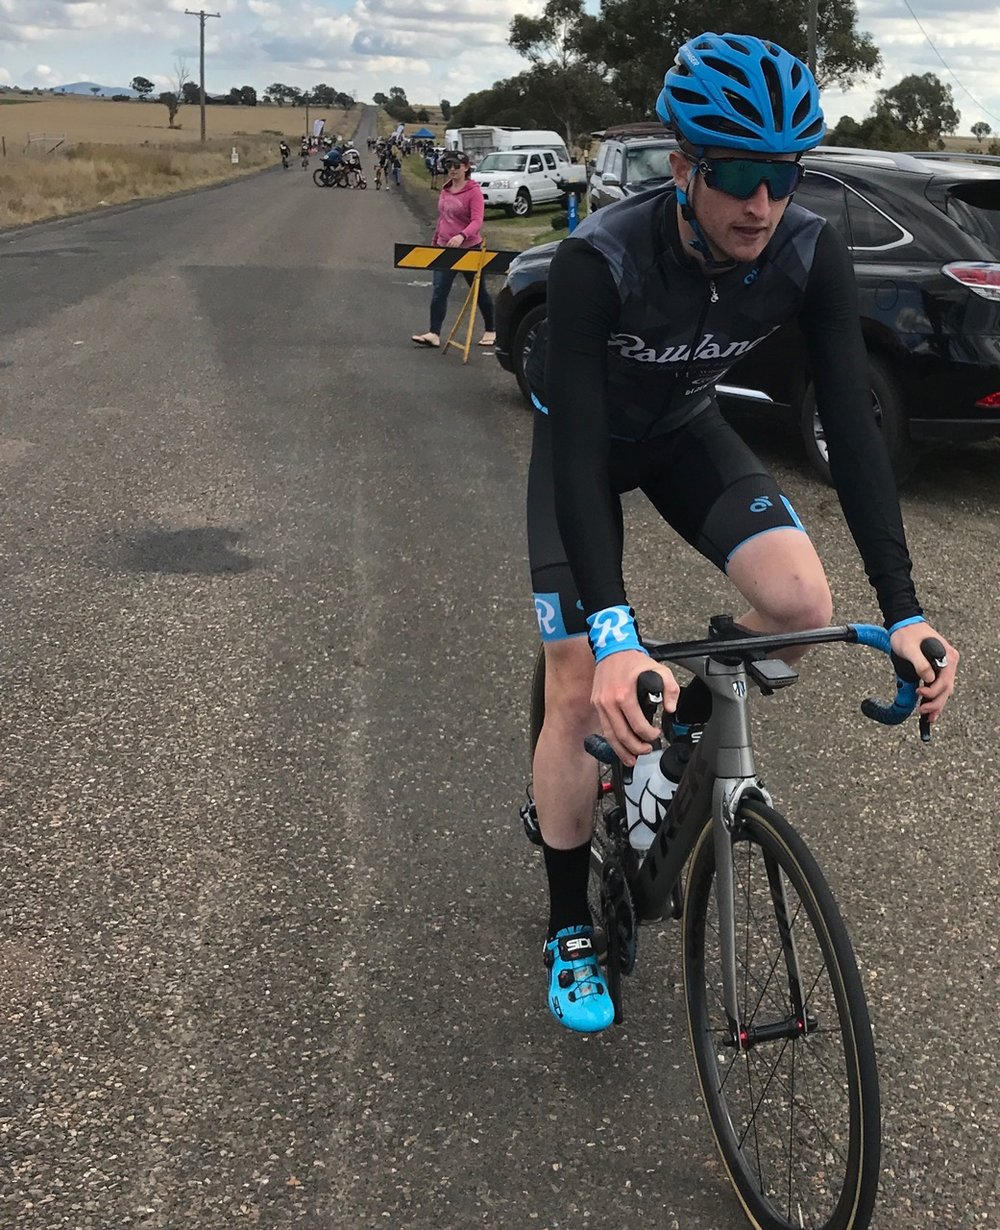 Gunnedah Tamworth 17 - Conor finished 16th in Division 1. Both races over the weekend were well conducted in ideal conditions .